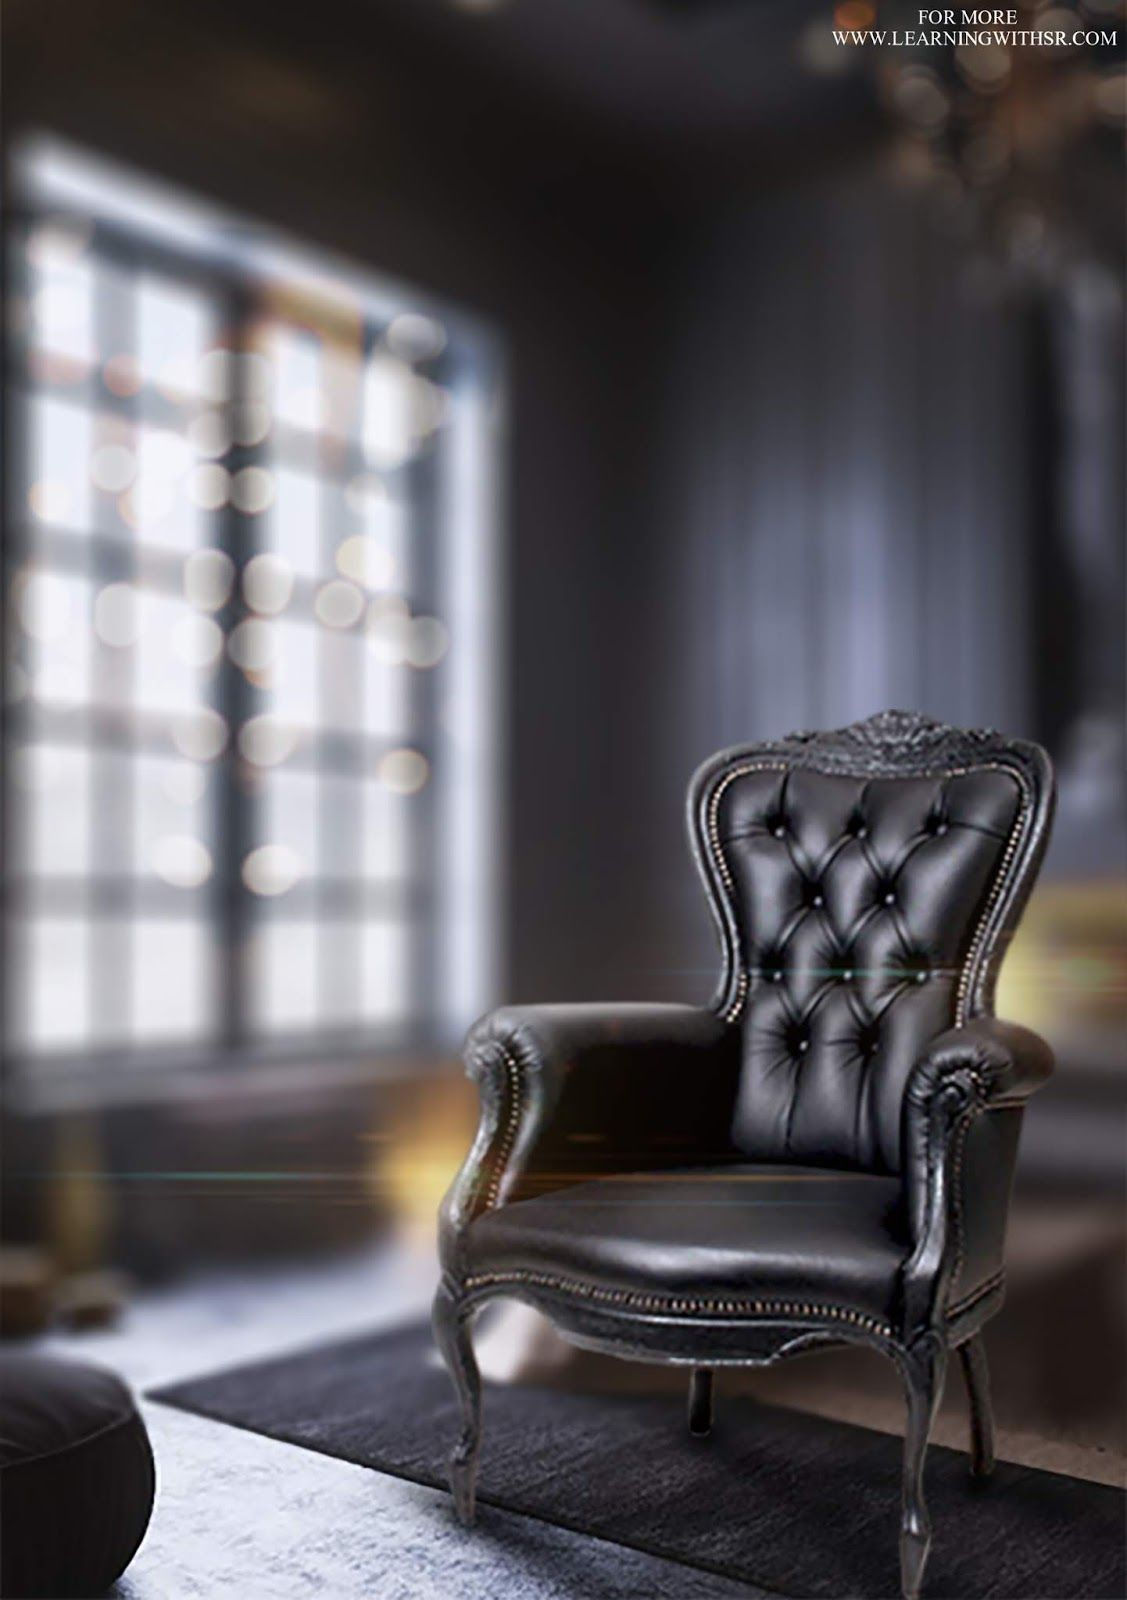 Chair Cb Backgroun Hd Background Download Blurred Background Hd Backgrounds